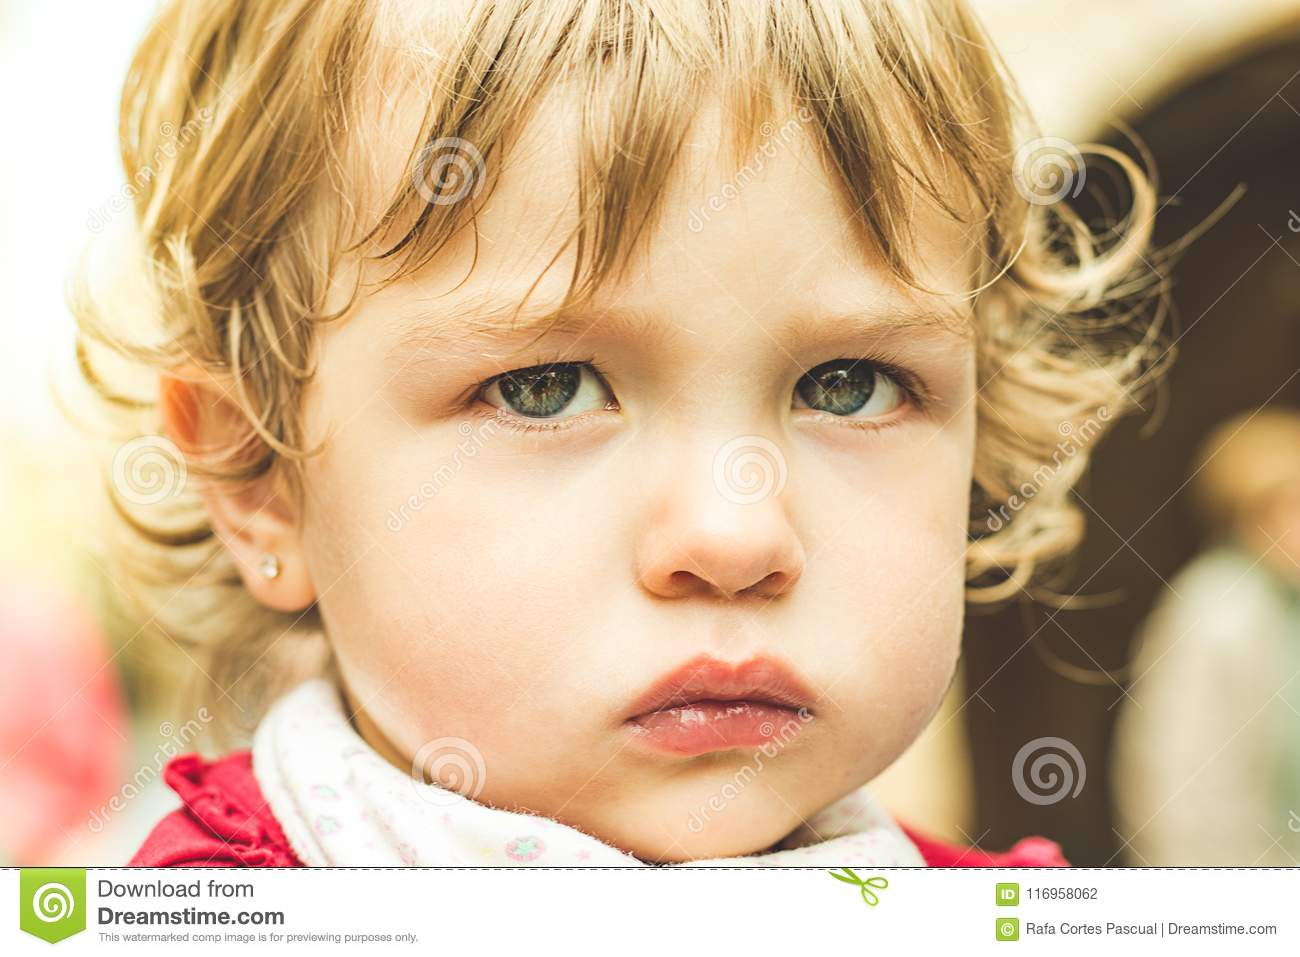 Close-up of a lovely child with beautiful eyes